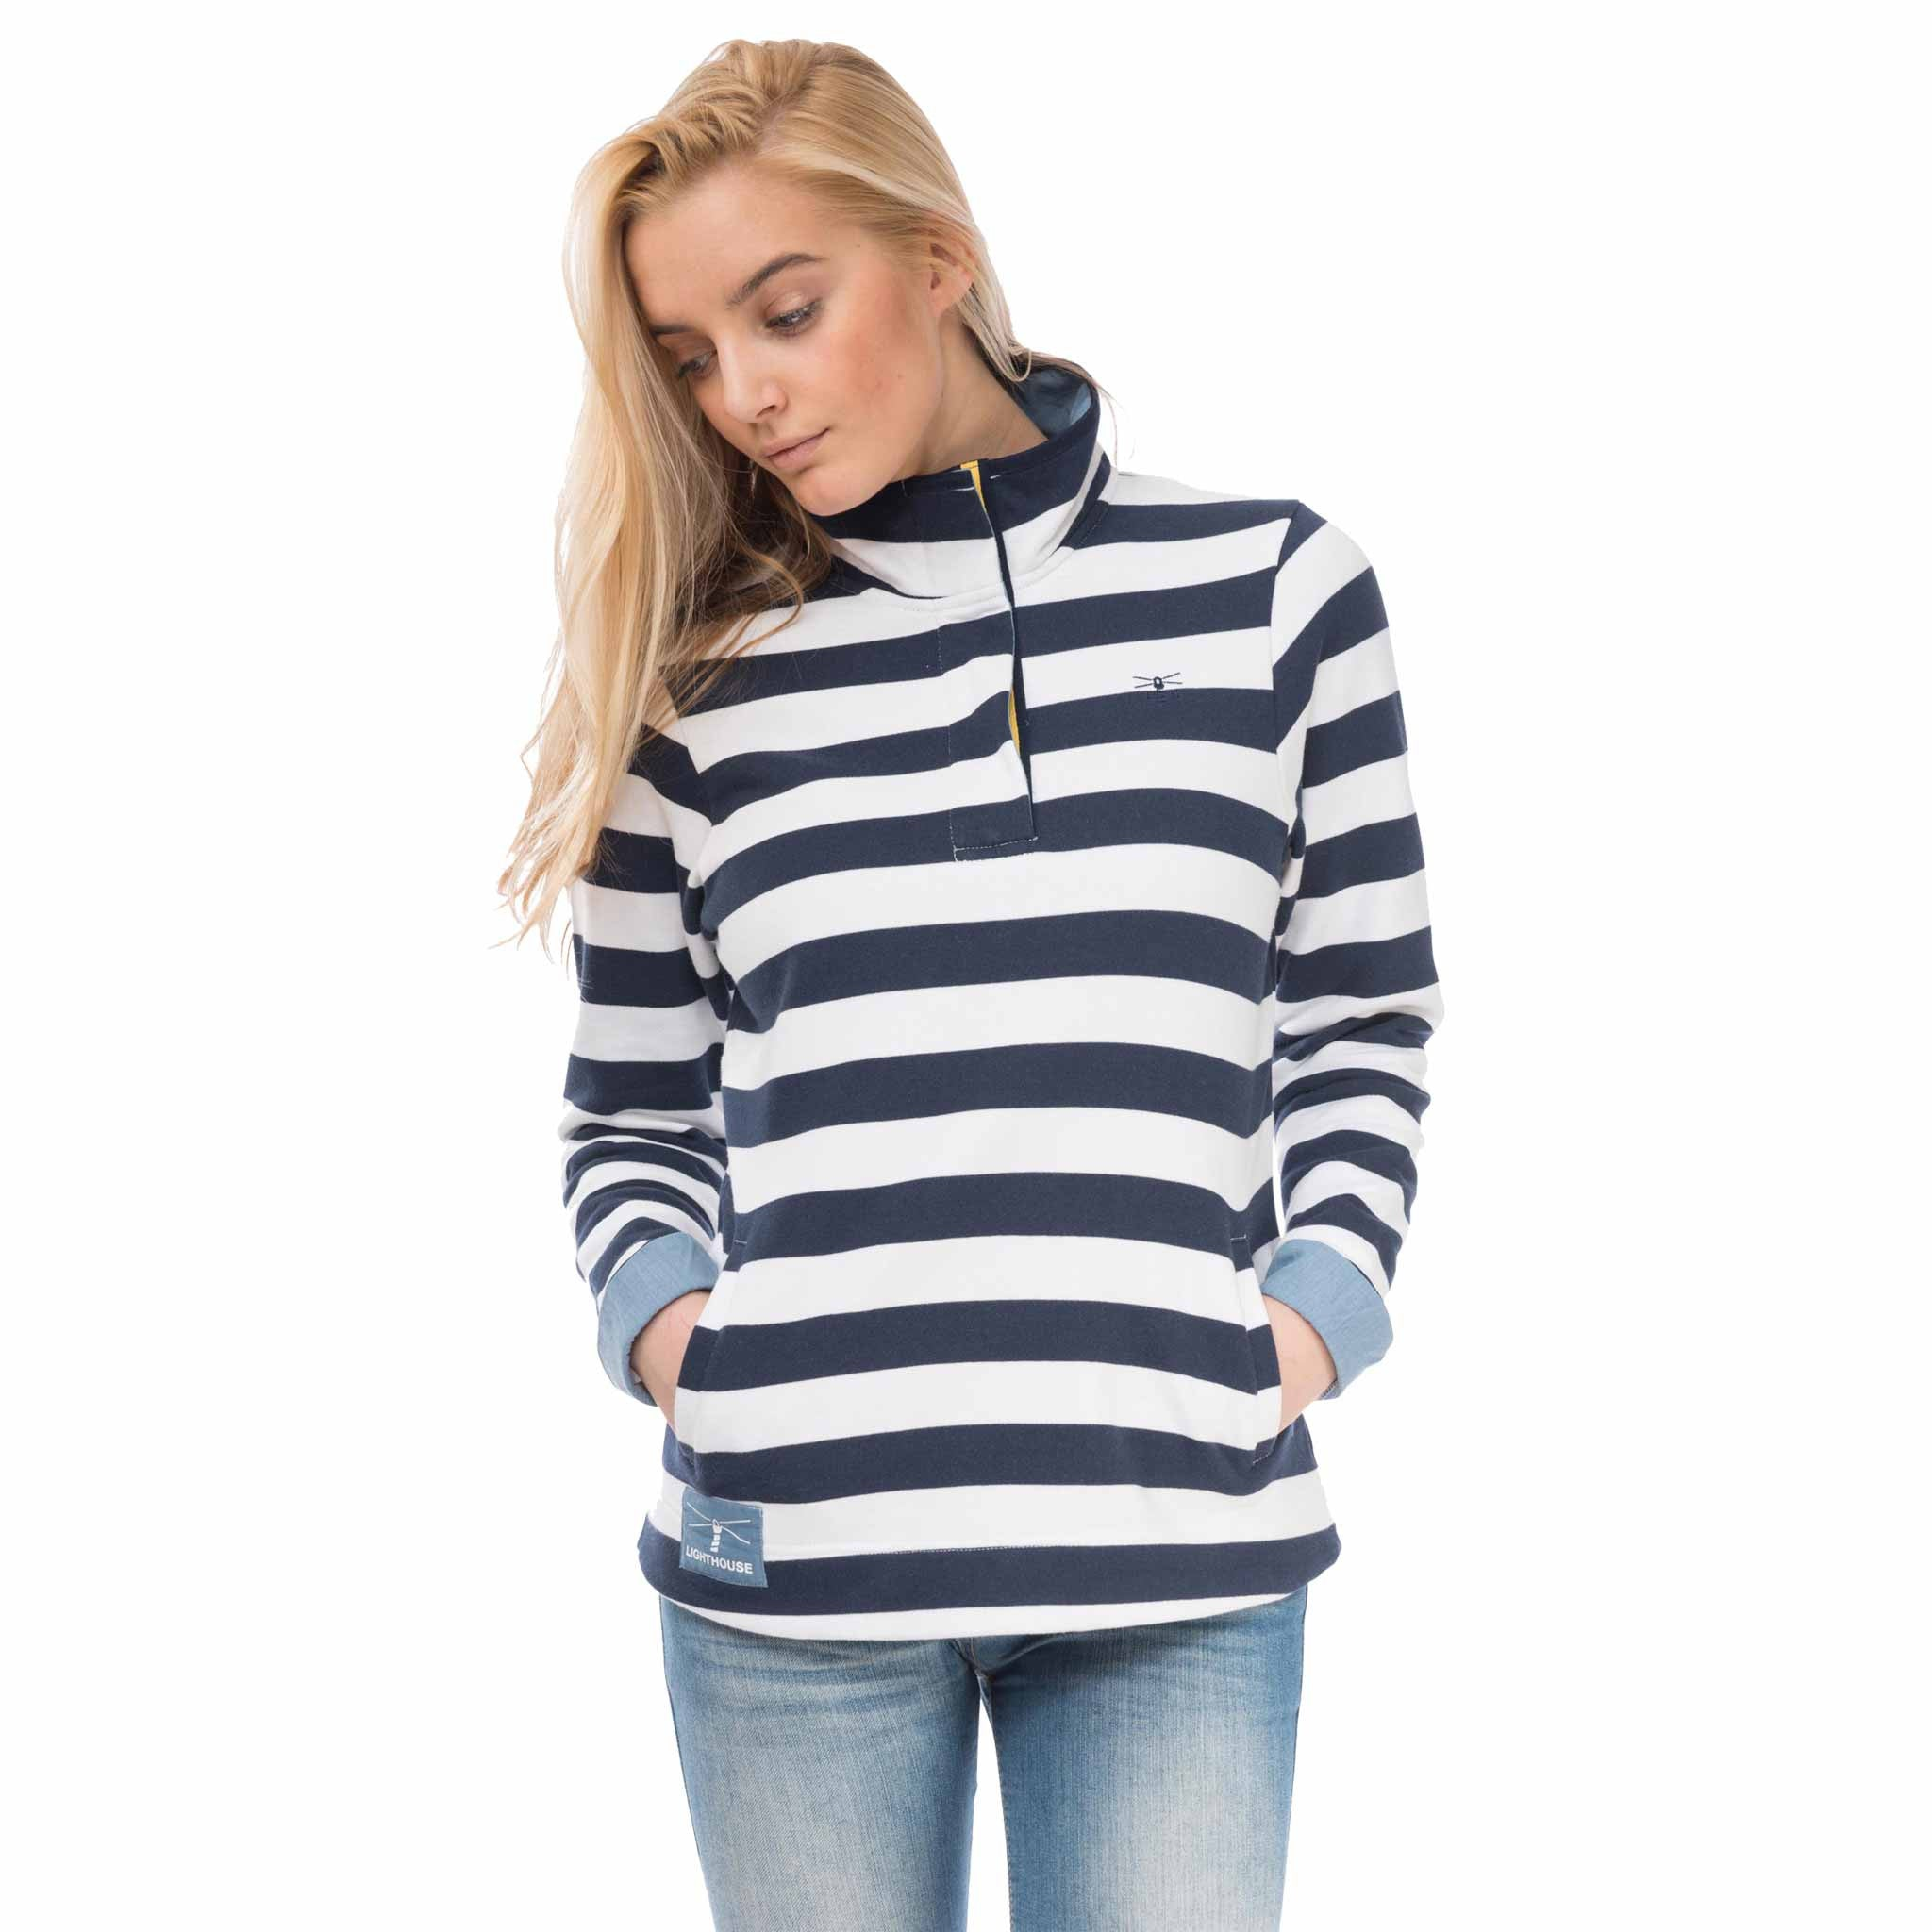 Haven Womens Half Zip Sweatshirt in Night Sky Stripe, Modelled Front View | Lighthouse